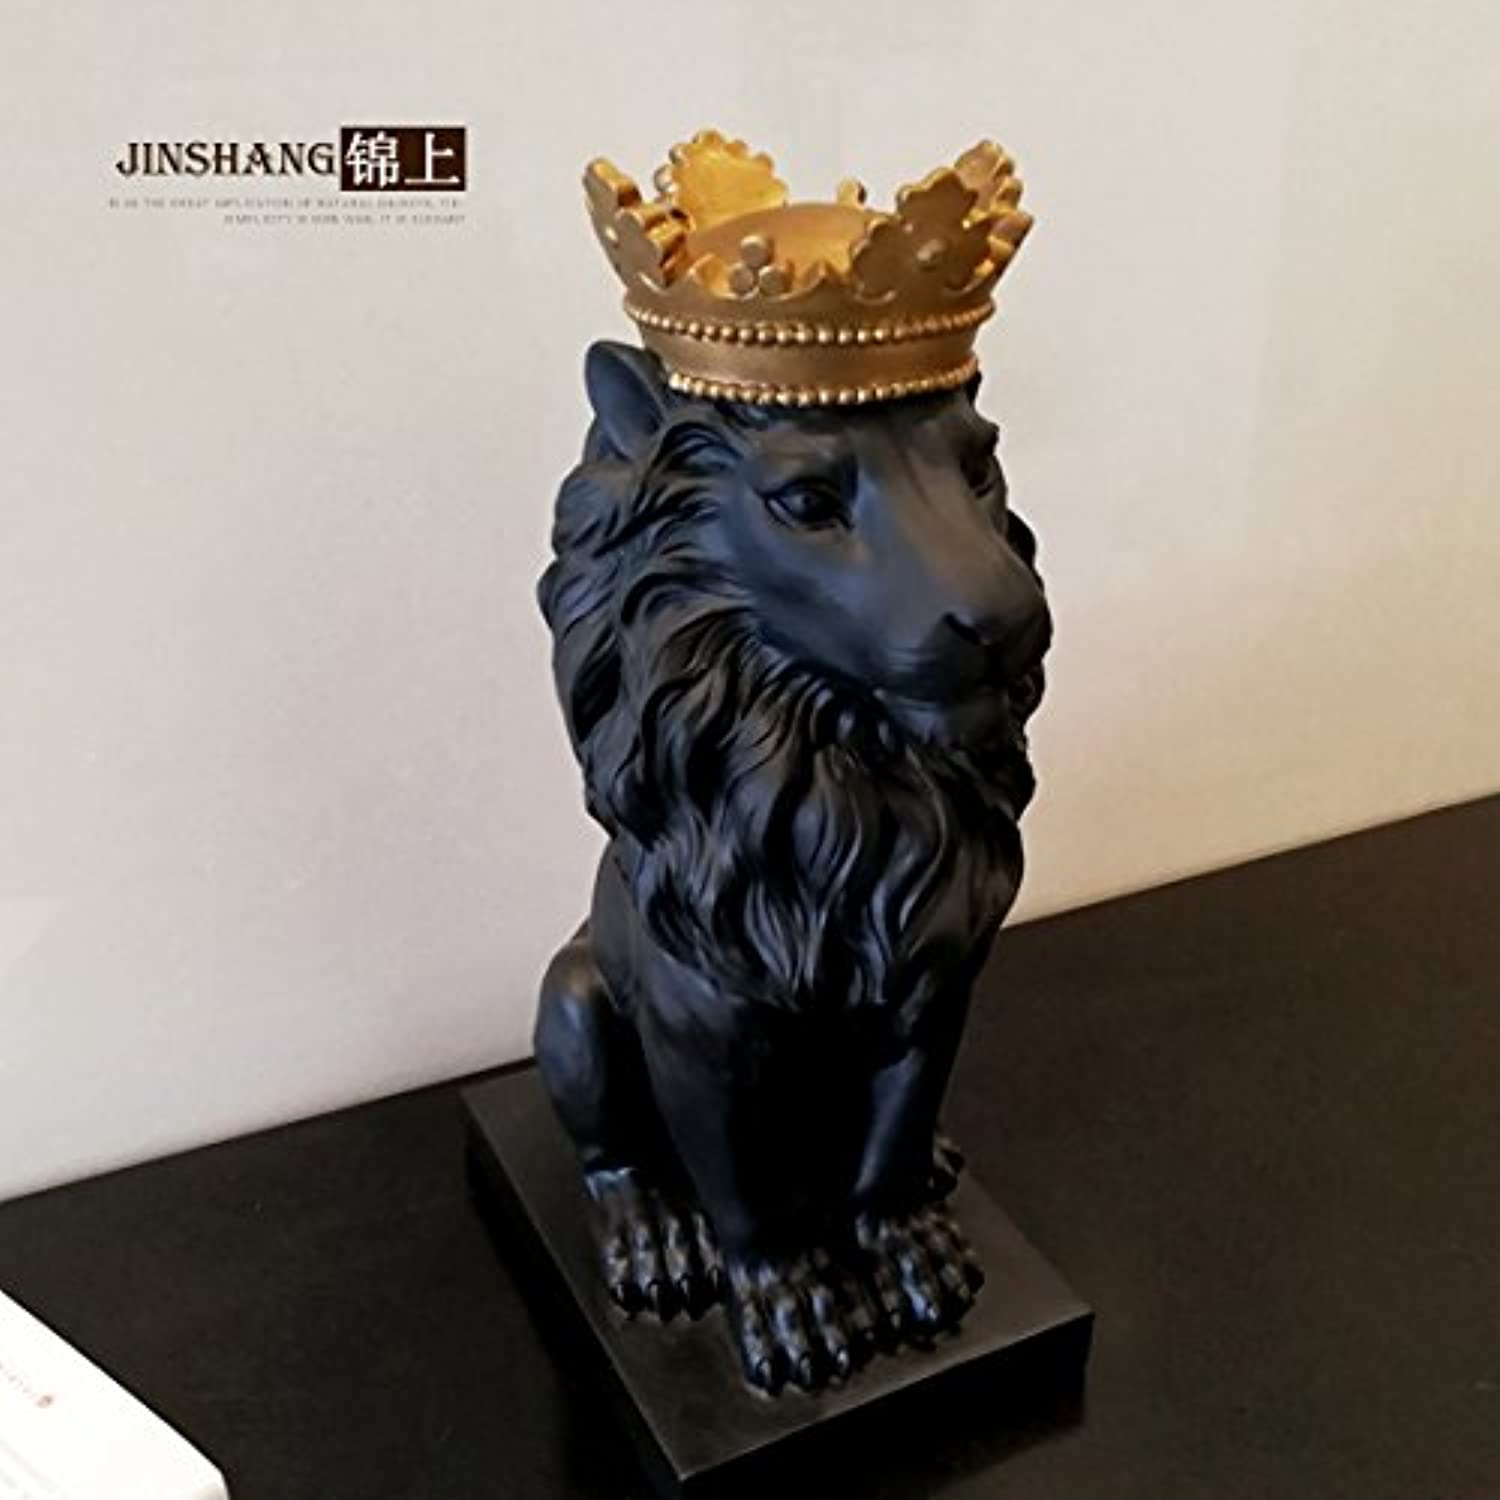 Zamtac Nordic Crown Lion Ornaments Home Accessories Living Room Wine Cabinet Office Desk Model Room Decorations Gifts AP4281612 - (color  Black gold Crown)